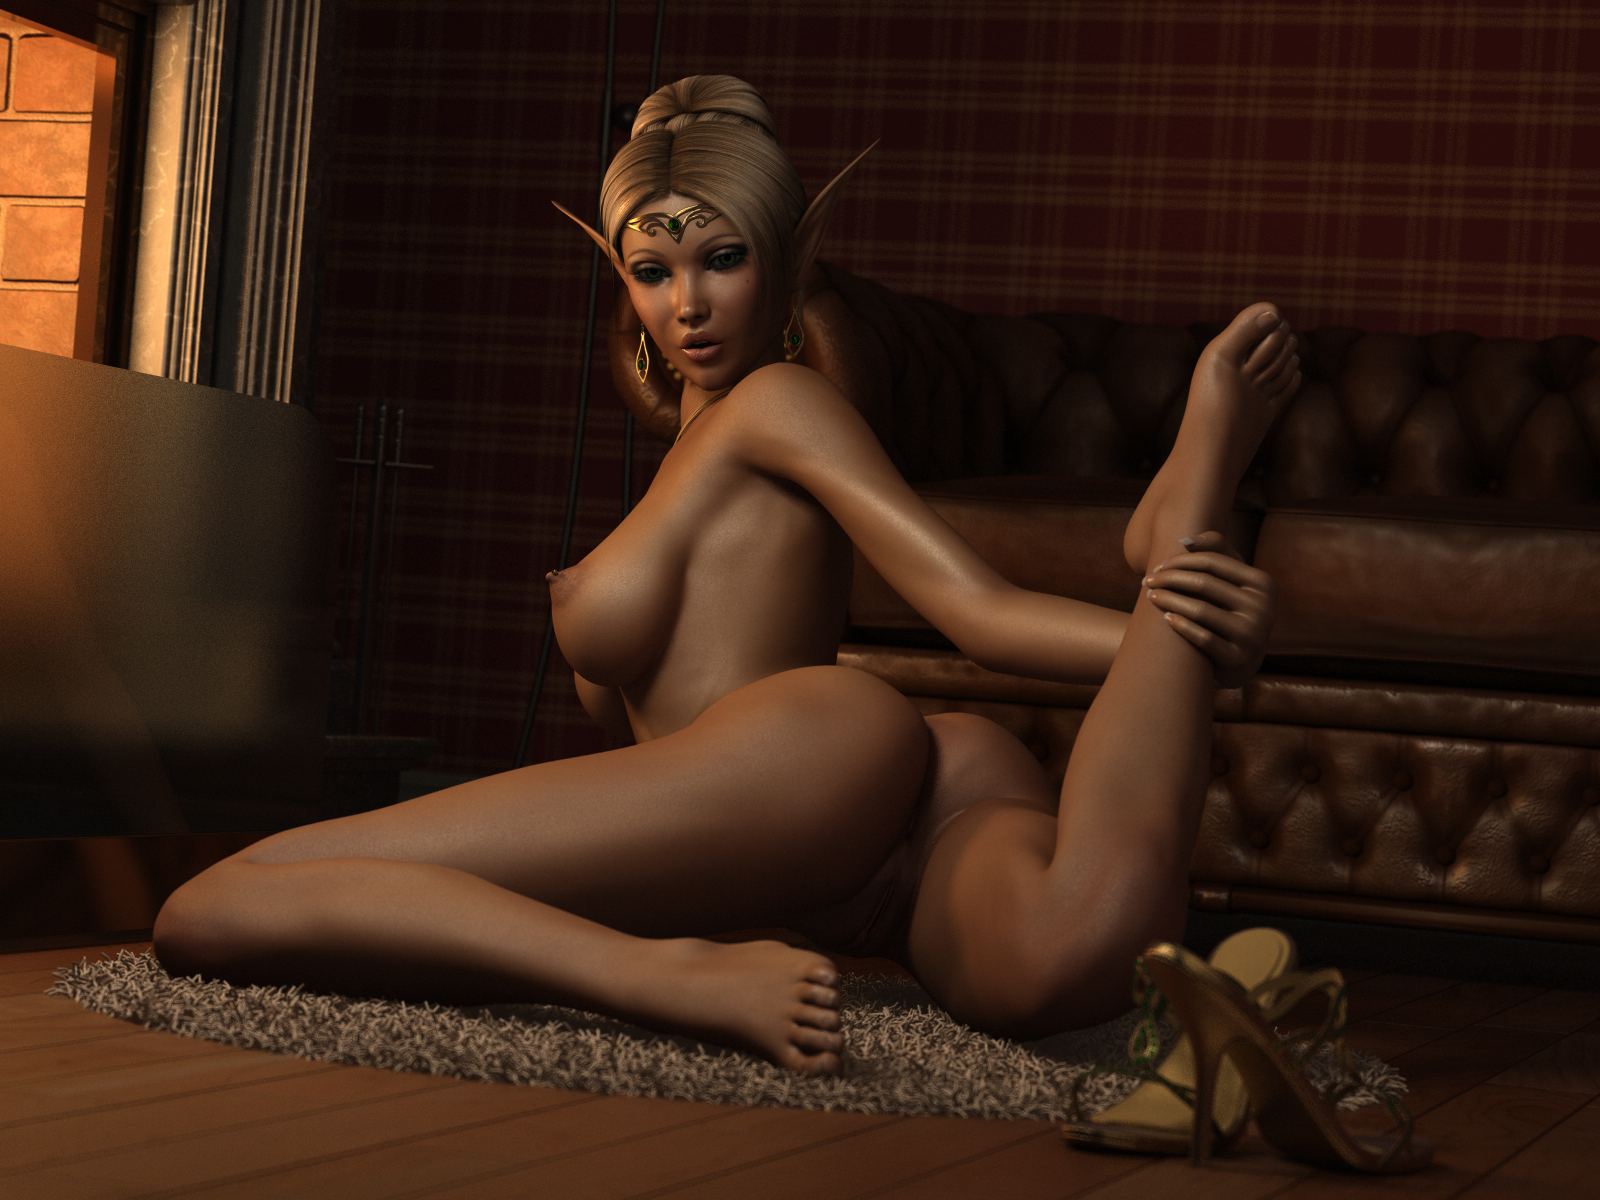 hottest drawing of girls nude